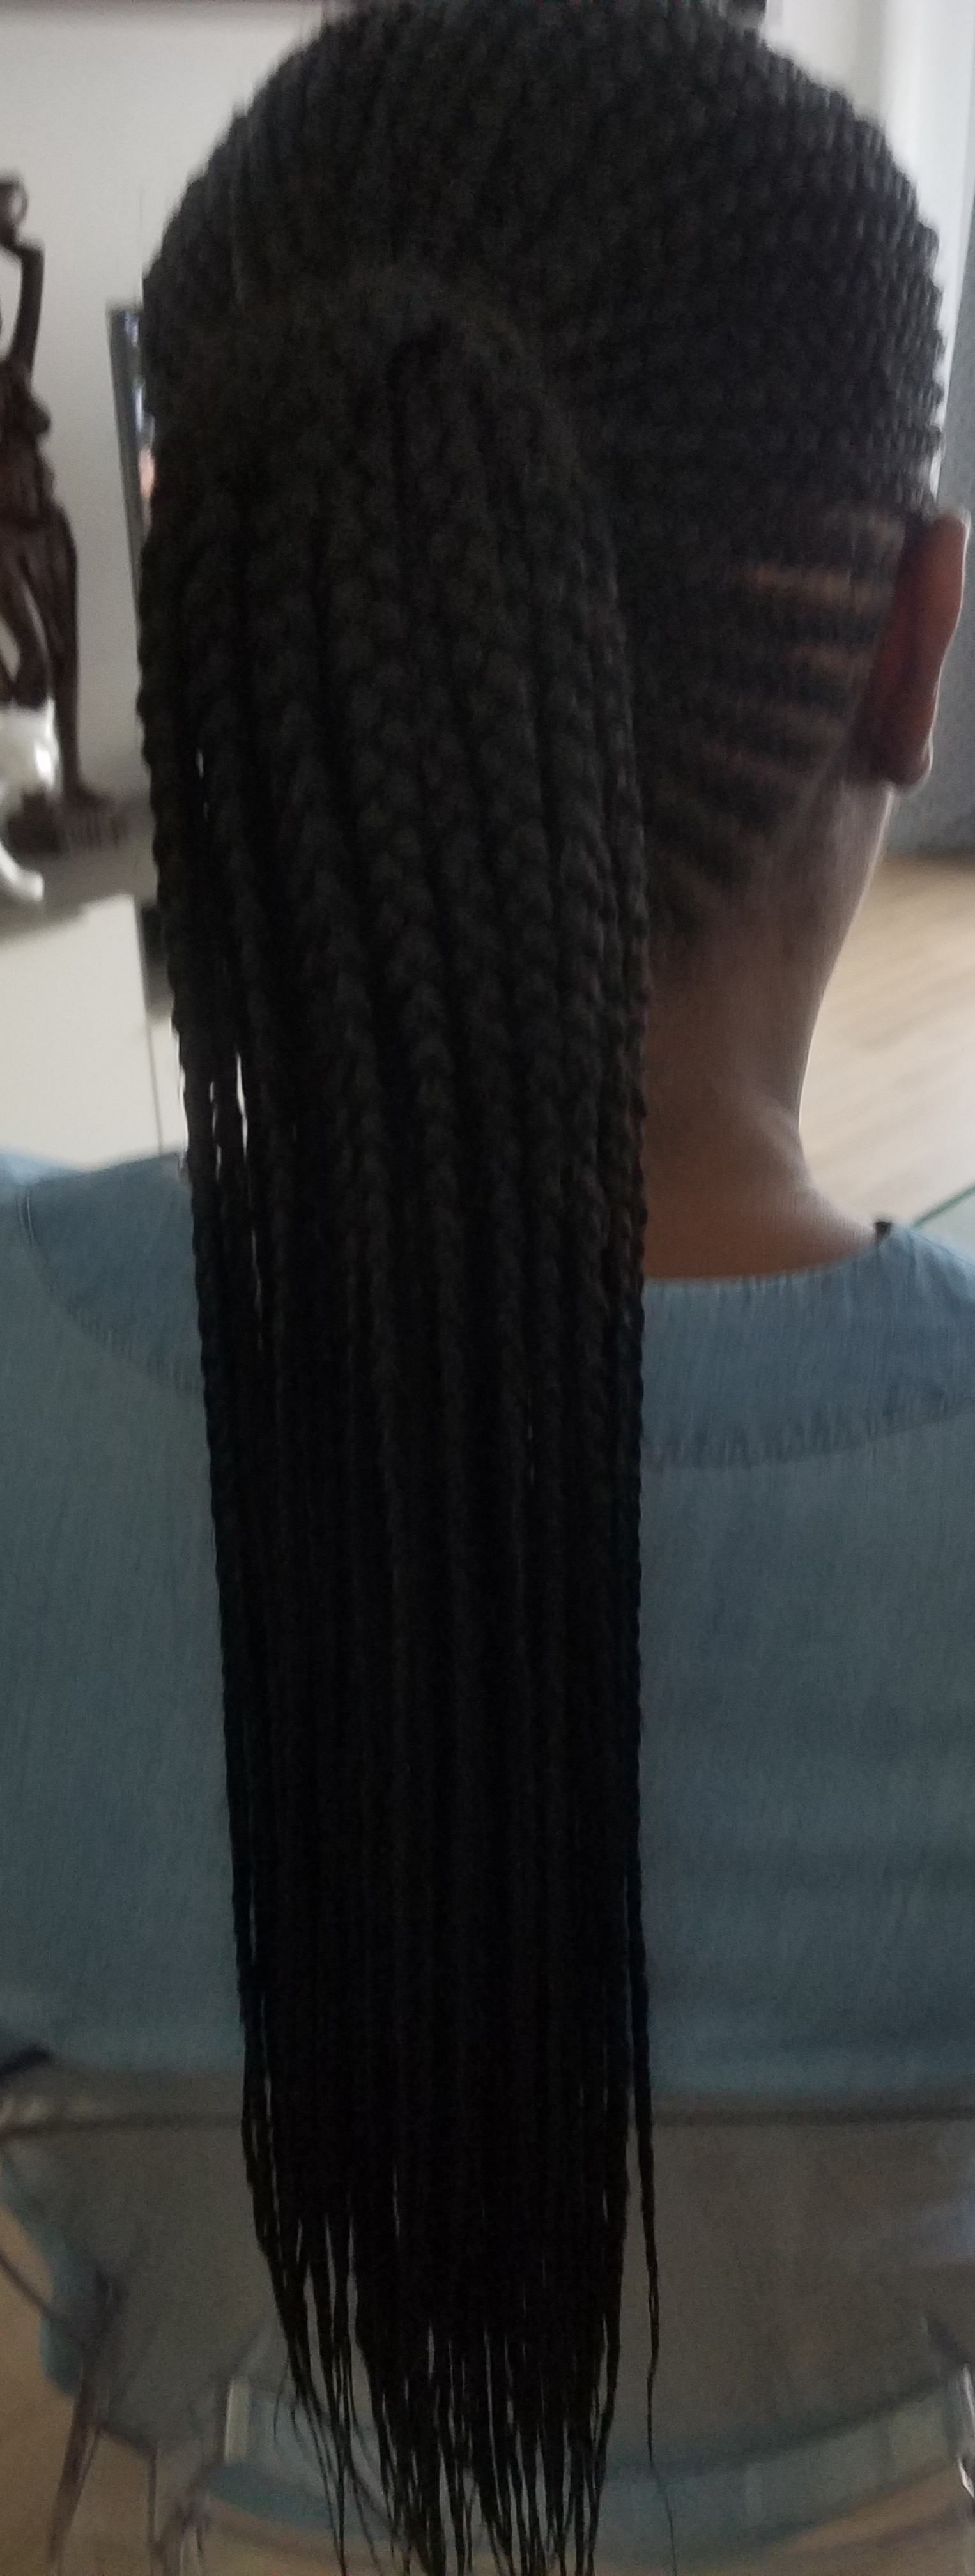 salon de coiffure afro tresse tresses box braids crochet braids vanilles tissages paris 75 77 78 91 92 93 94 95 OTUNYGLM